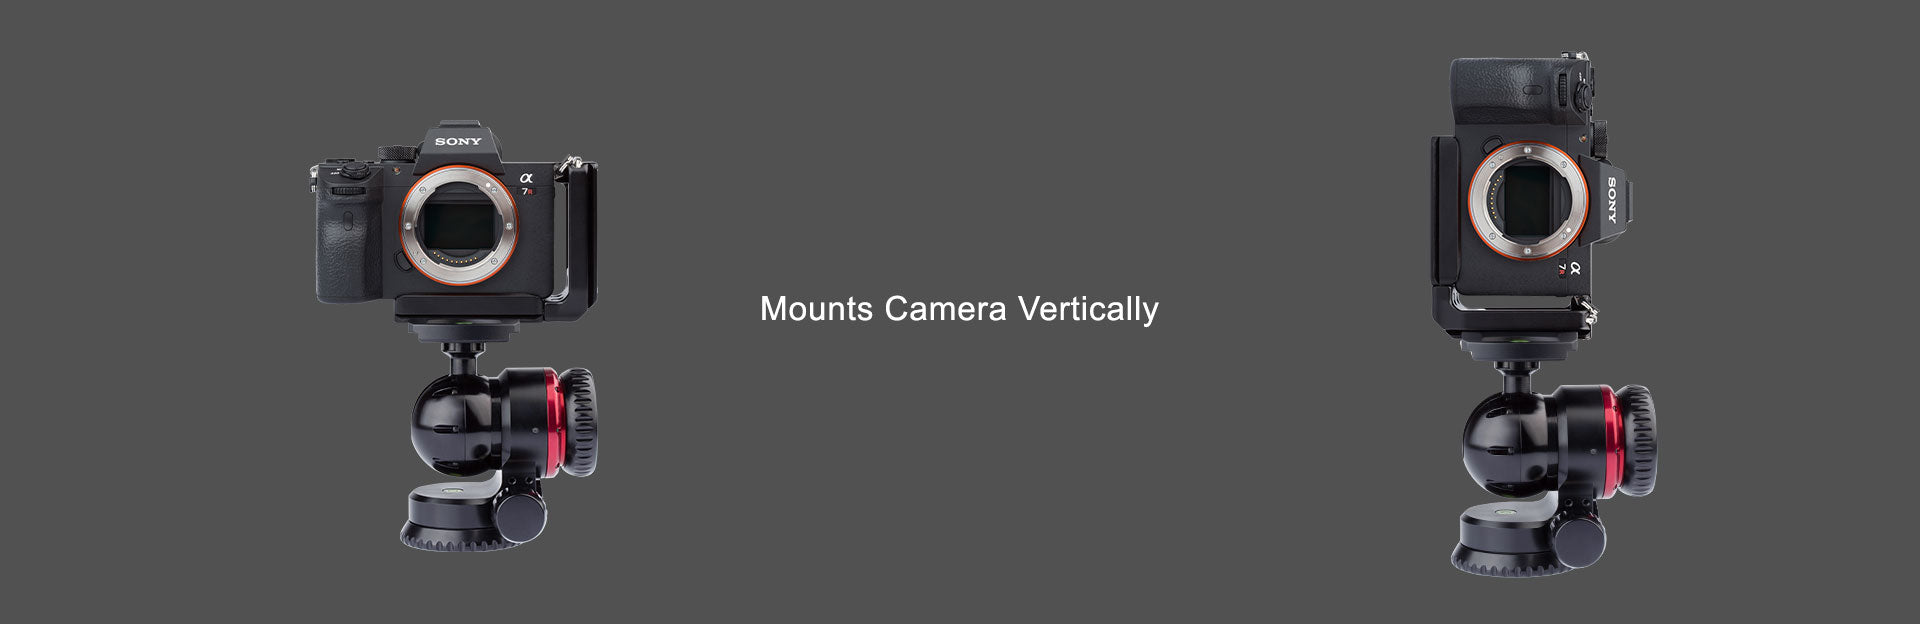 Mounts your camera Vertically